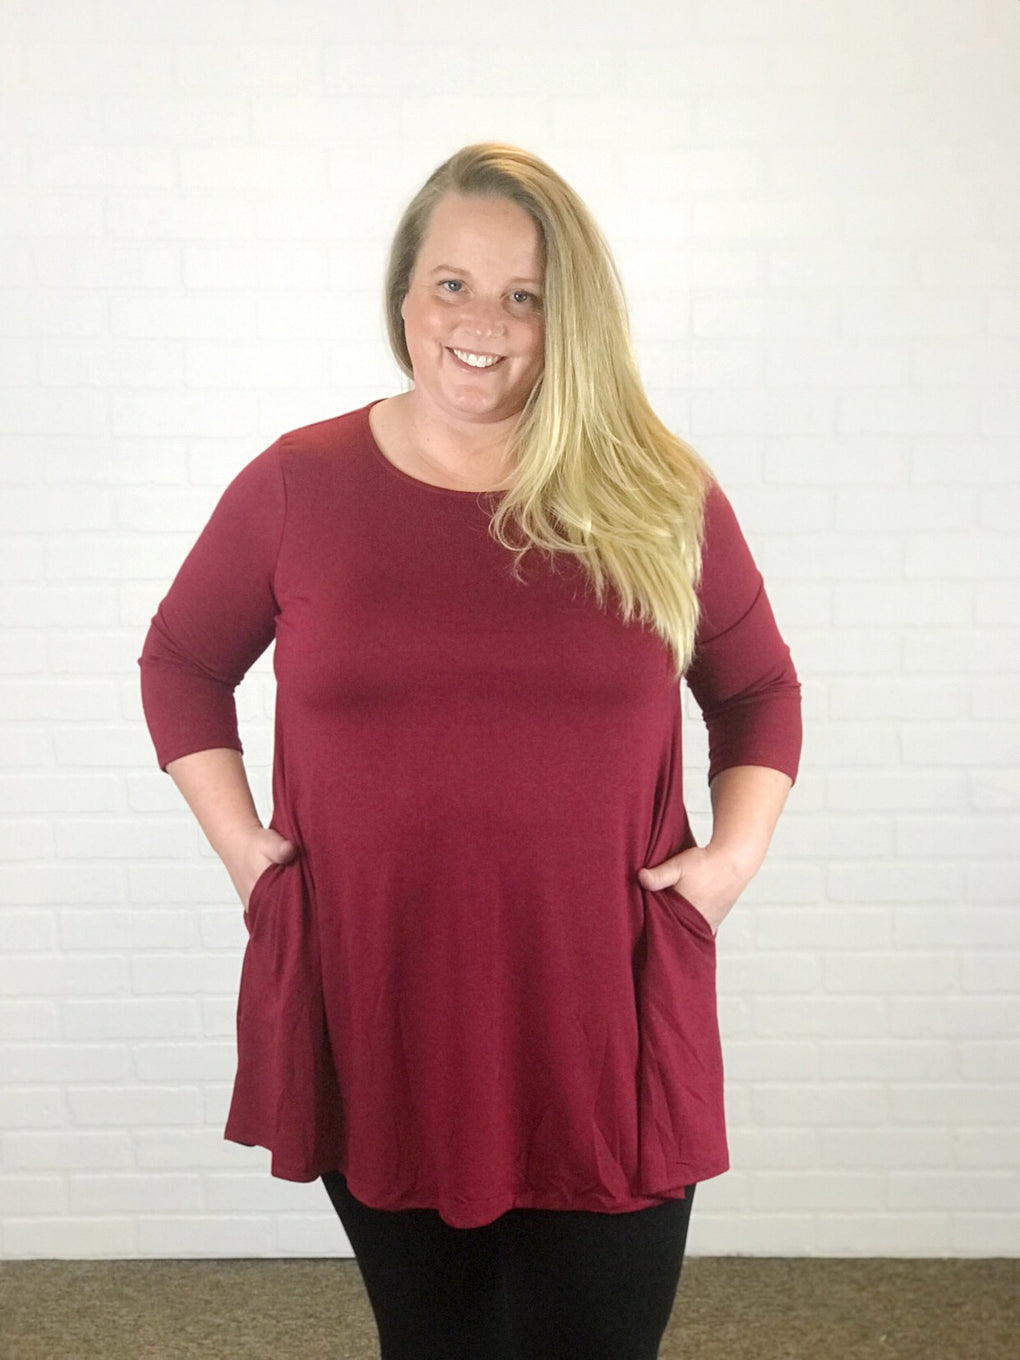 Back 2 Basic 3/4 Sleeve Swing Top w/ Pockets - Maroon